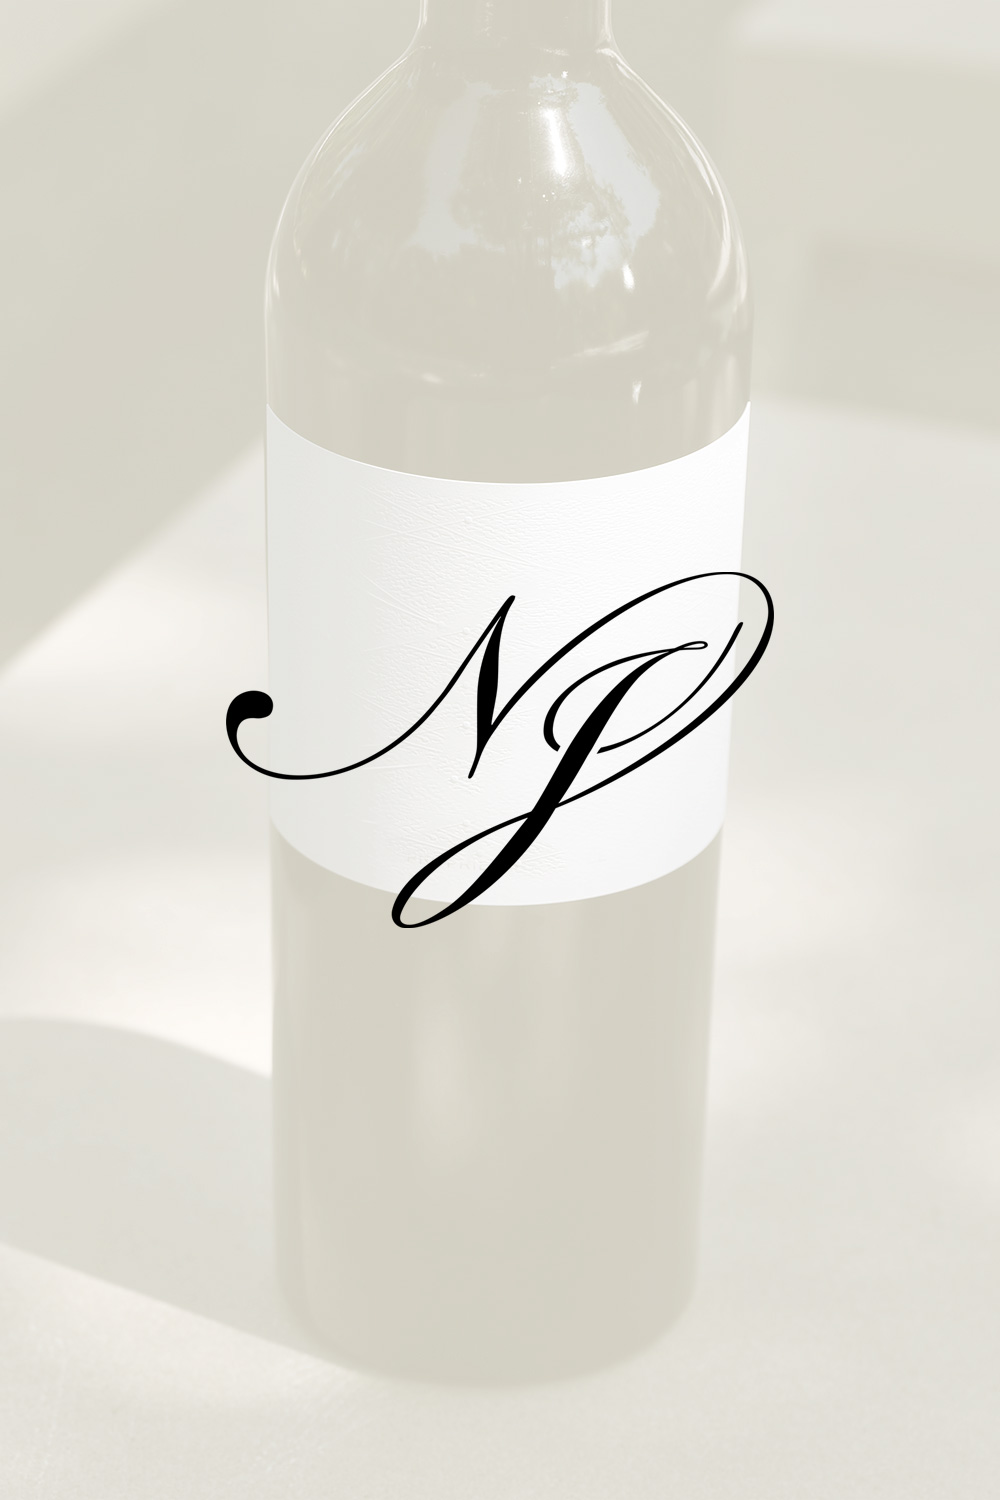 2012 Nicholson Jones Sugarloaf Cabernet 3L  - Nicholson Jones Selections